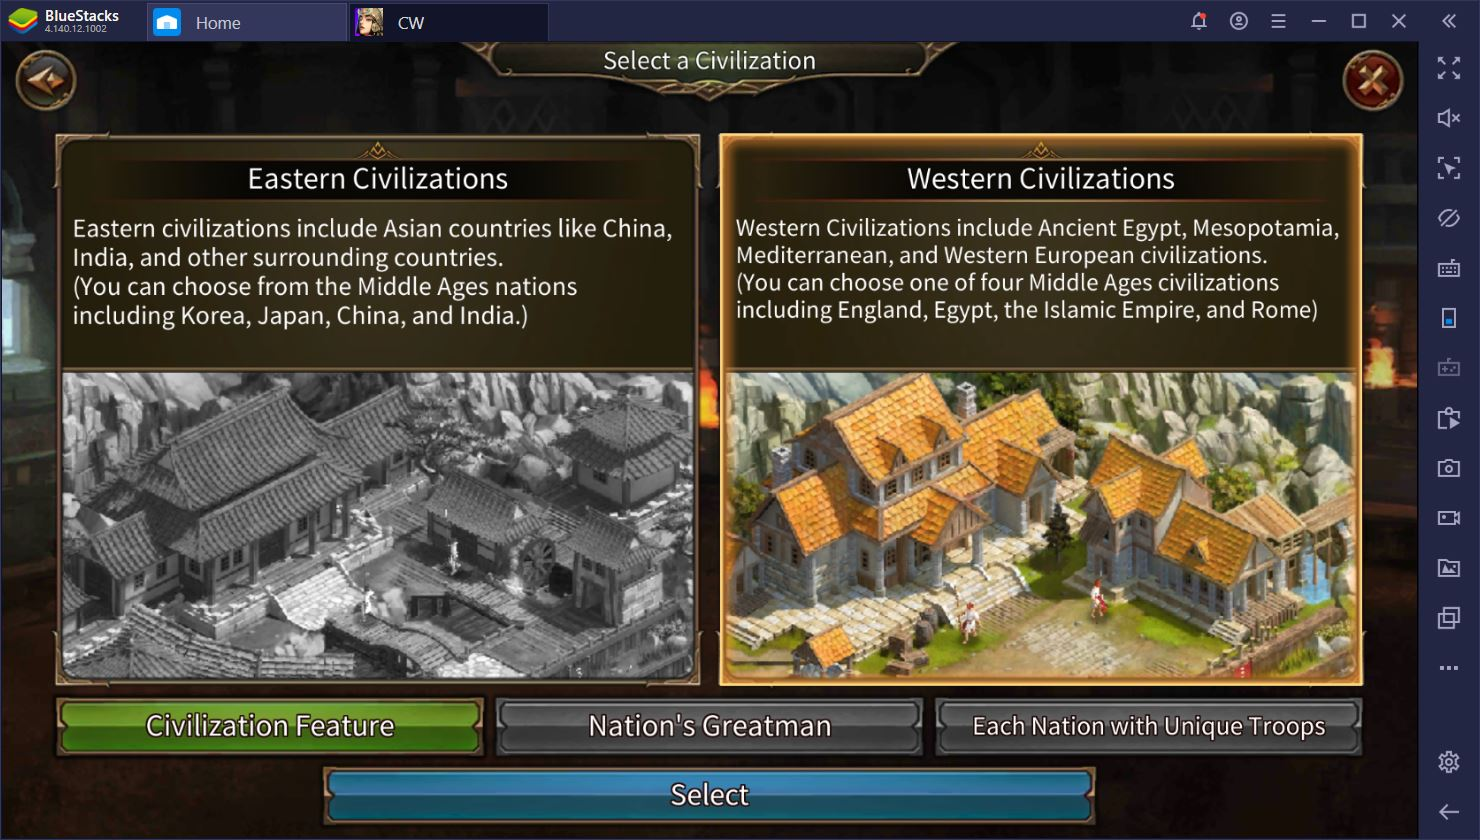 Civilization War on PC: Tips and Tricks to Become a Better Ruler